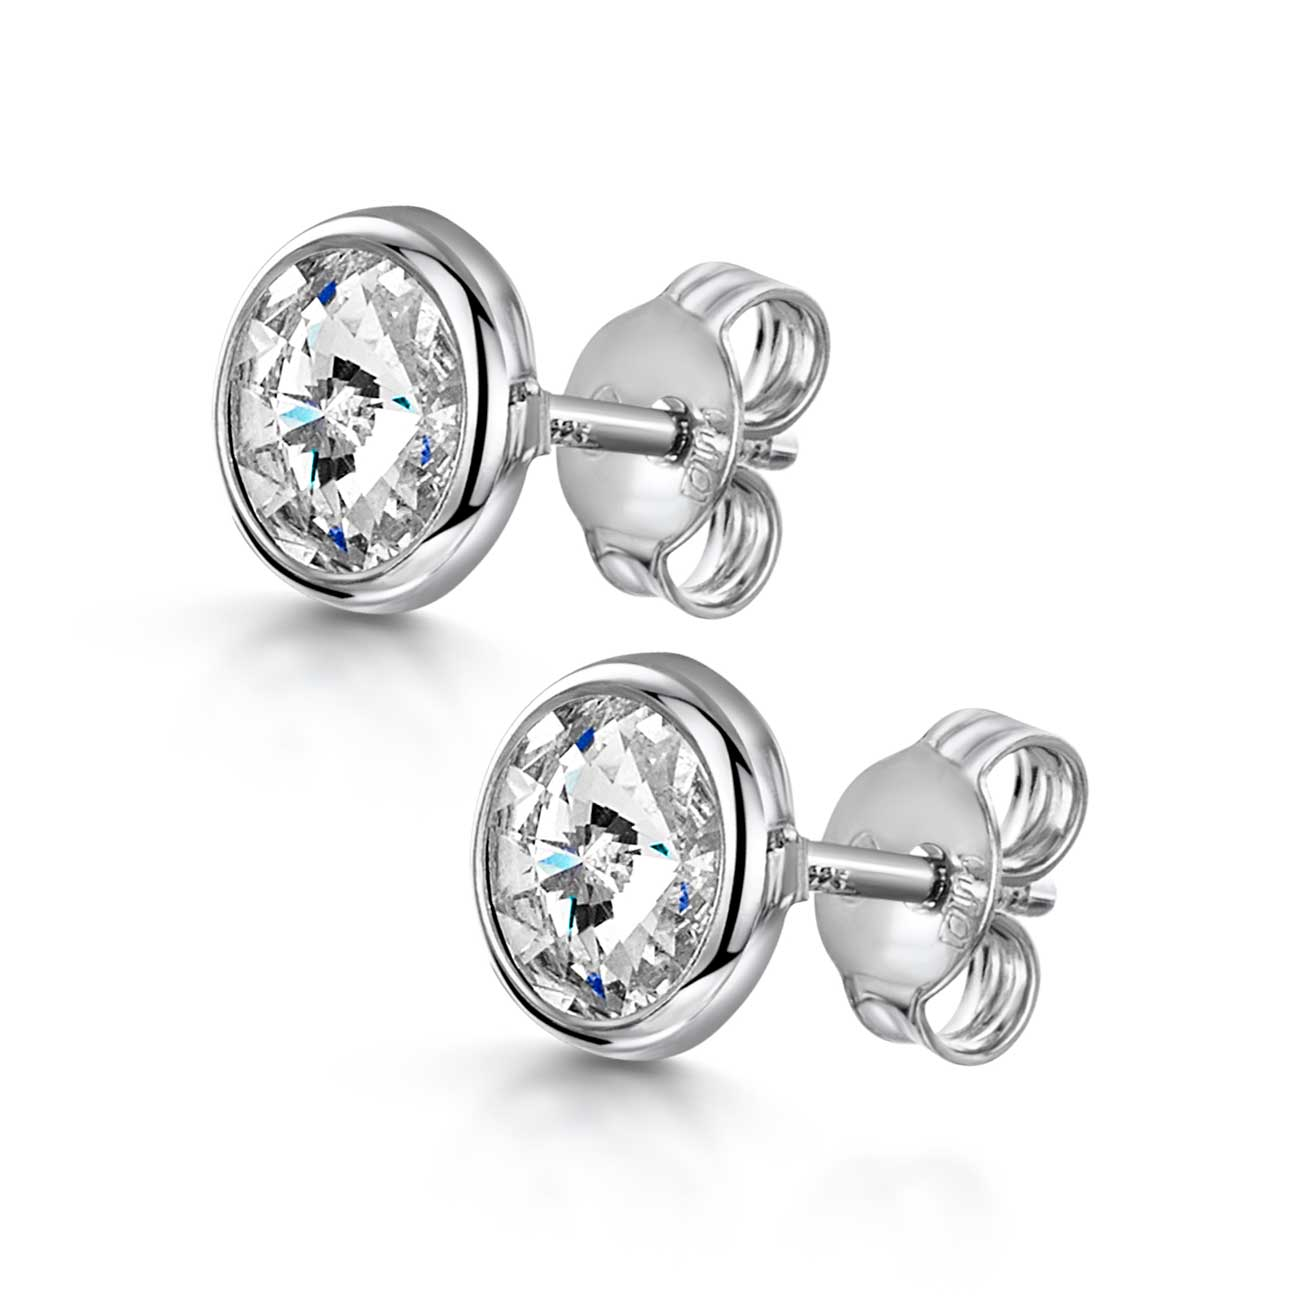 Amberta Silver Round Swarovski Clear Stud Earrings